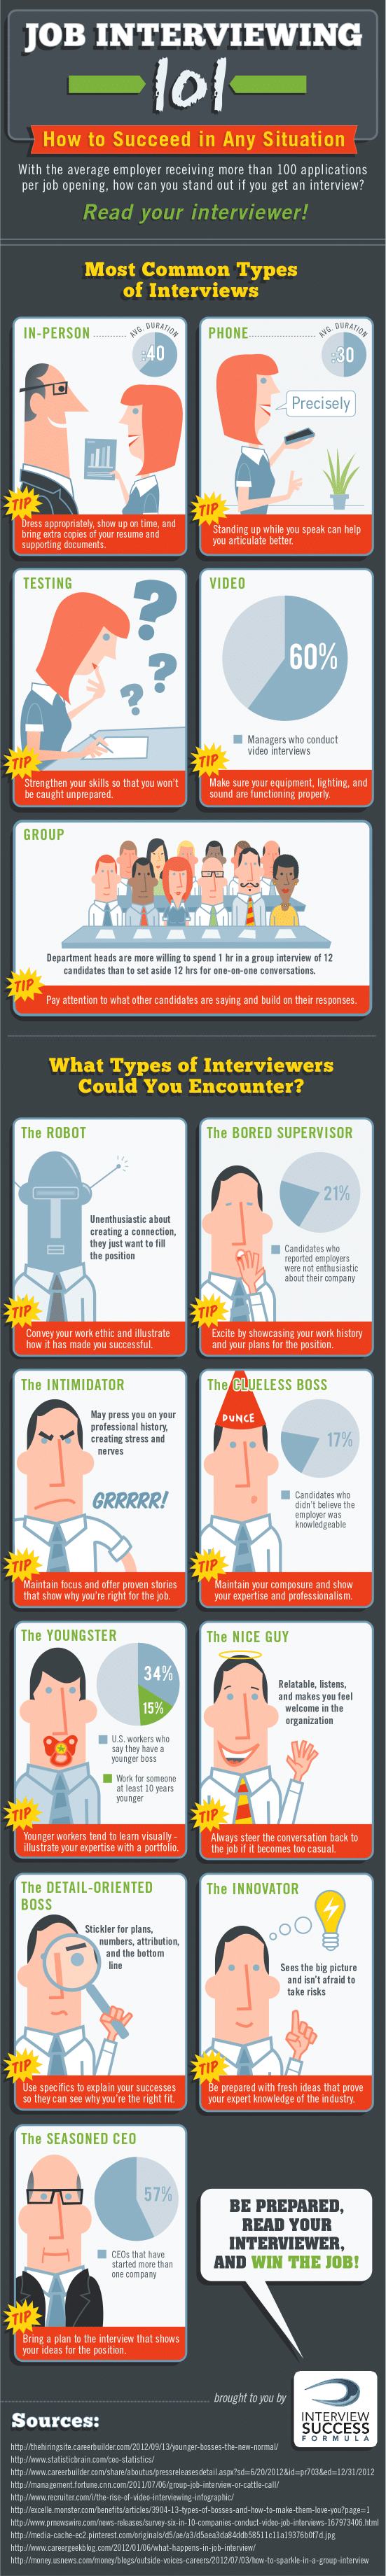 14-job-interview-tips-infographic